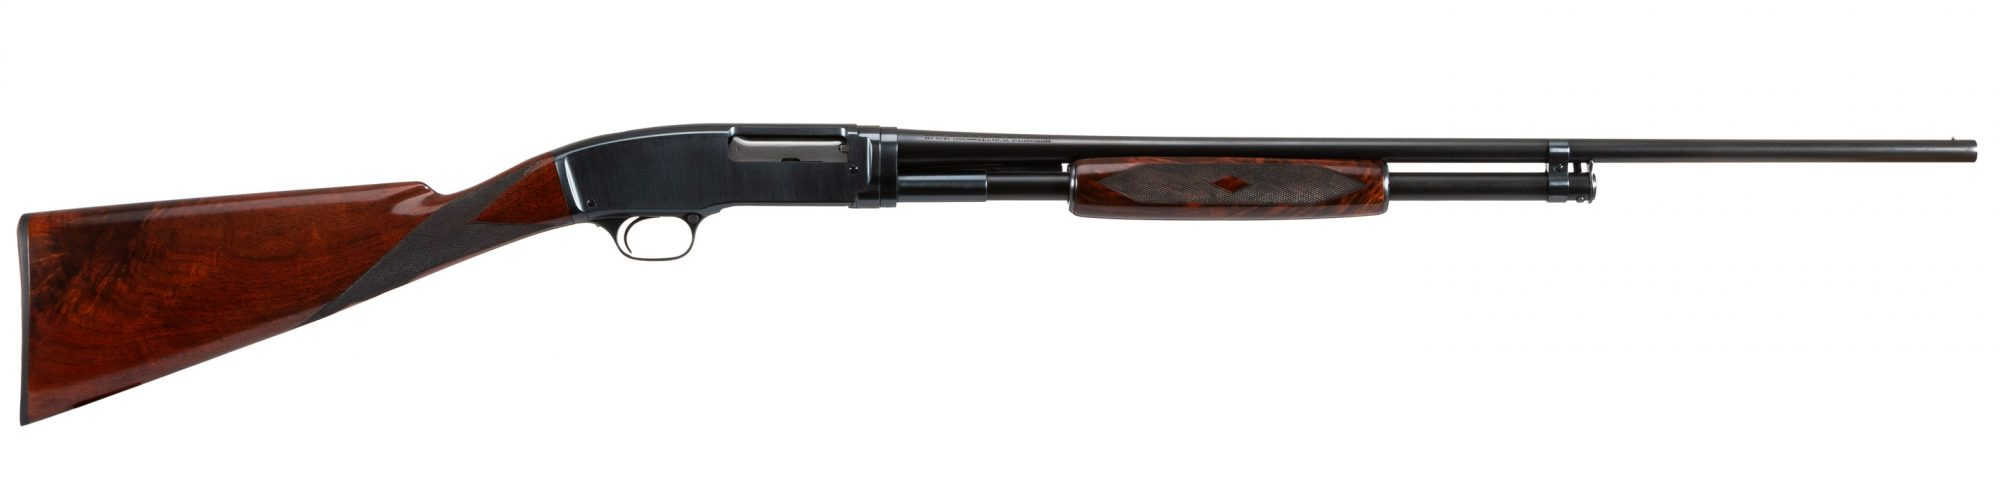 Photo of a Winchester Model 42, restored by Turnbull Restoration and featuring all period-correct finishes including charcoal bluing